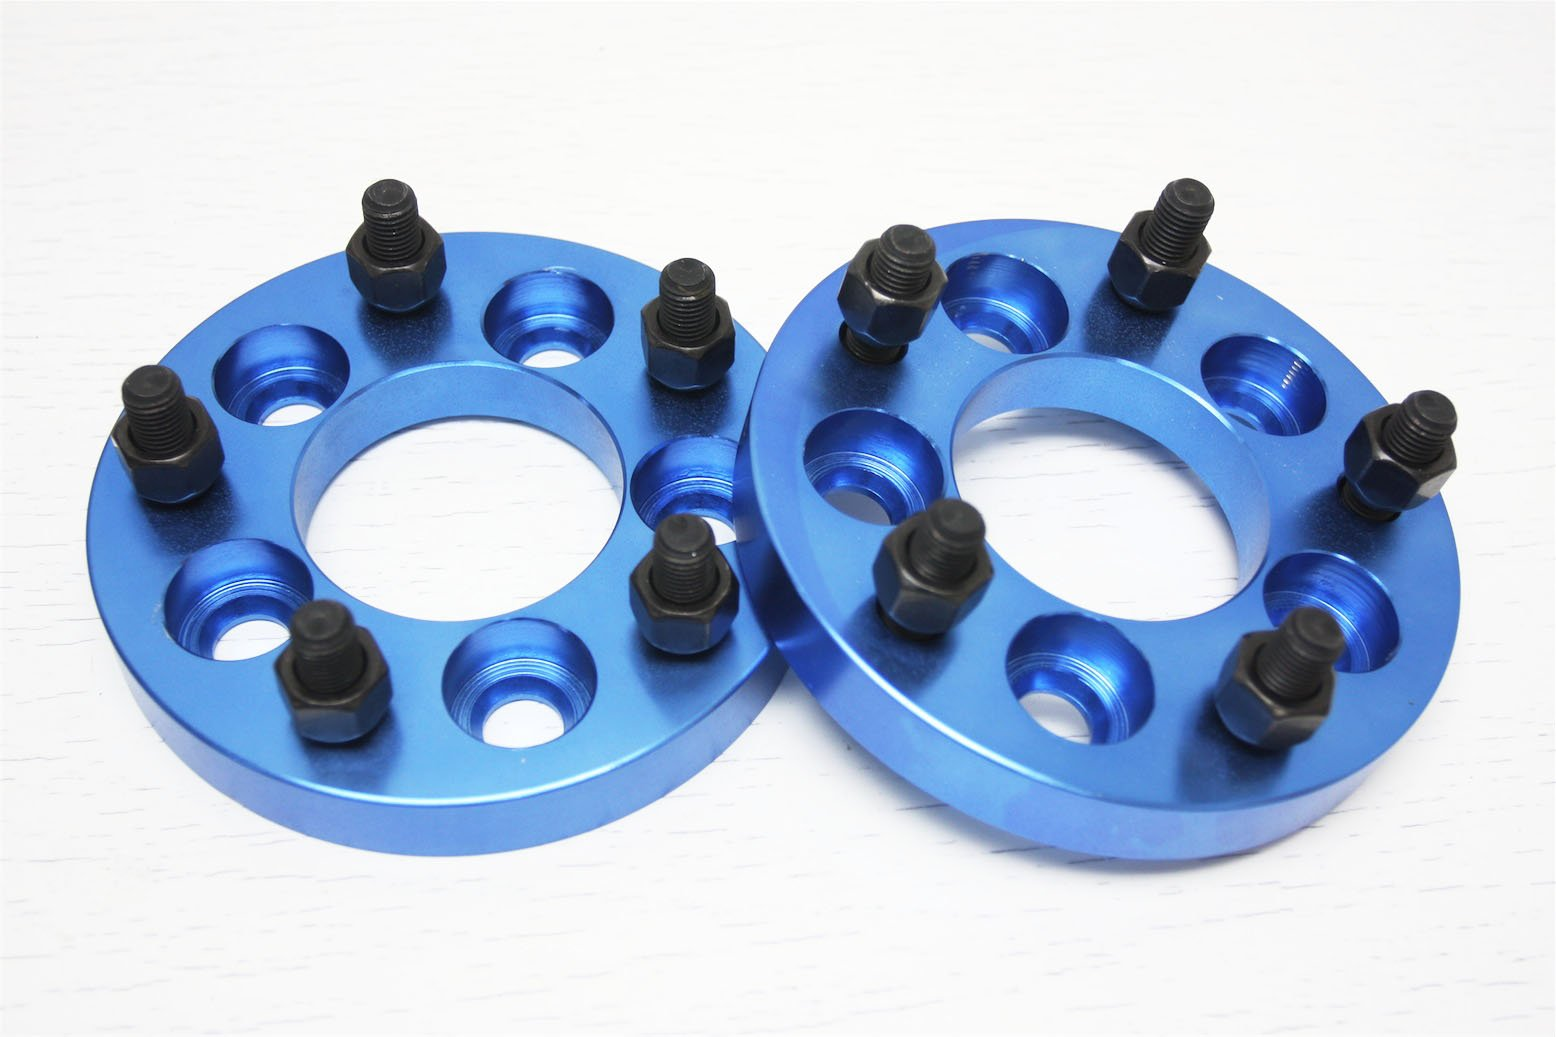 Autobahn88 Alloy Wheel Spacer for BMW with 5x120 Hub, Conversion to 5x4.5'' (5x114.3mm) 5-Lug JDM, Thick 0.8'' (20mm) - Pack of 2